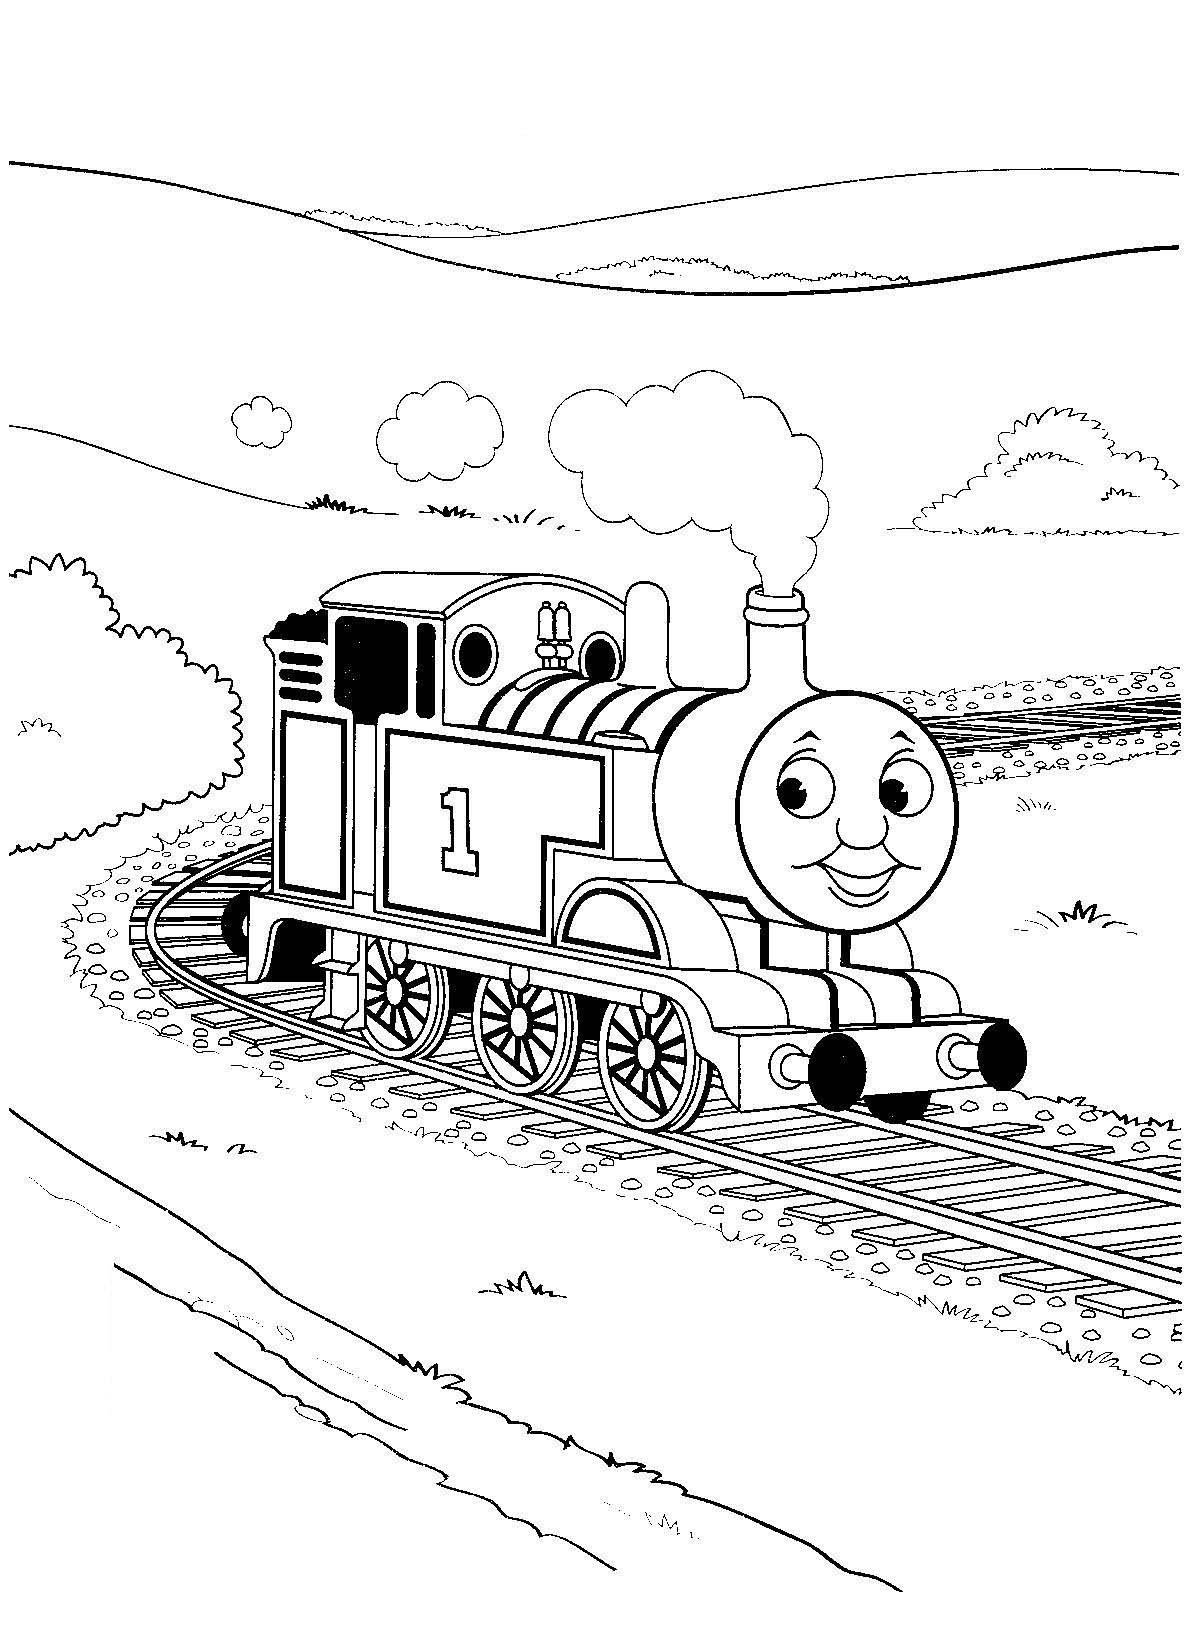 colouring pages thomas the tank engine thomas tank engine coloring pages coloring home tank the colouring thomas pages engine